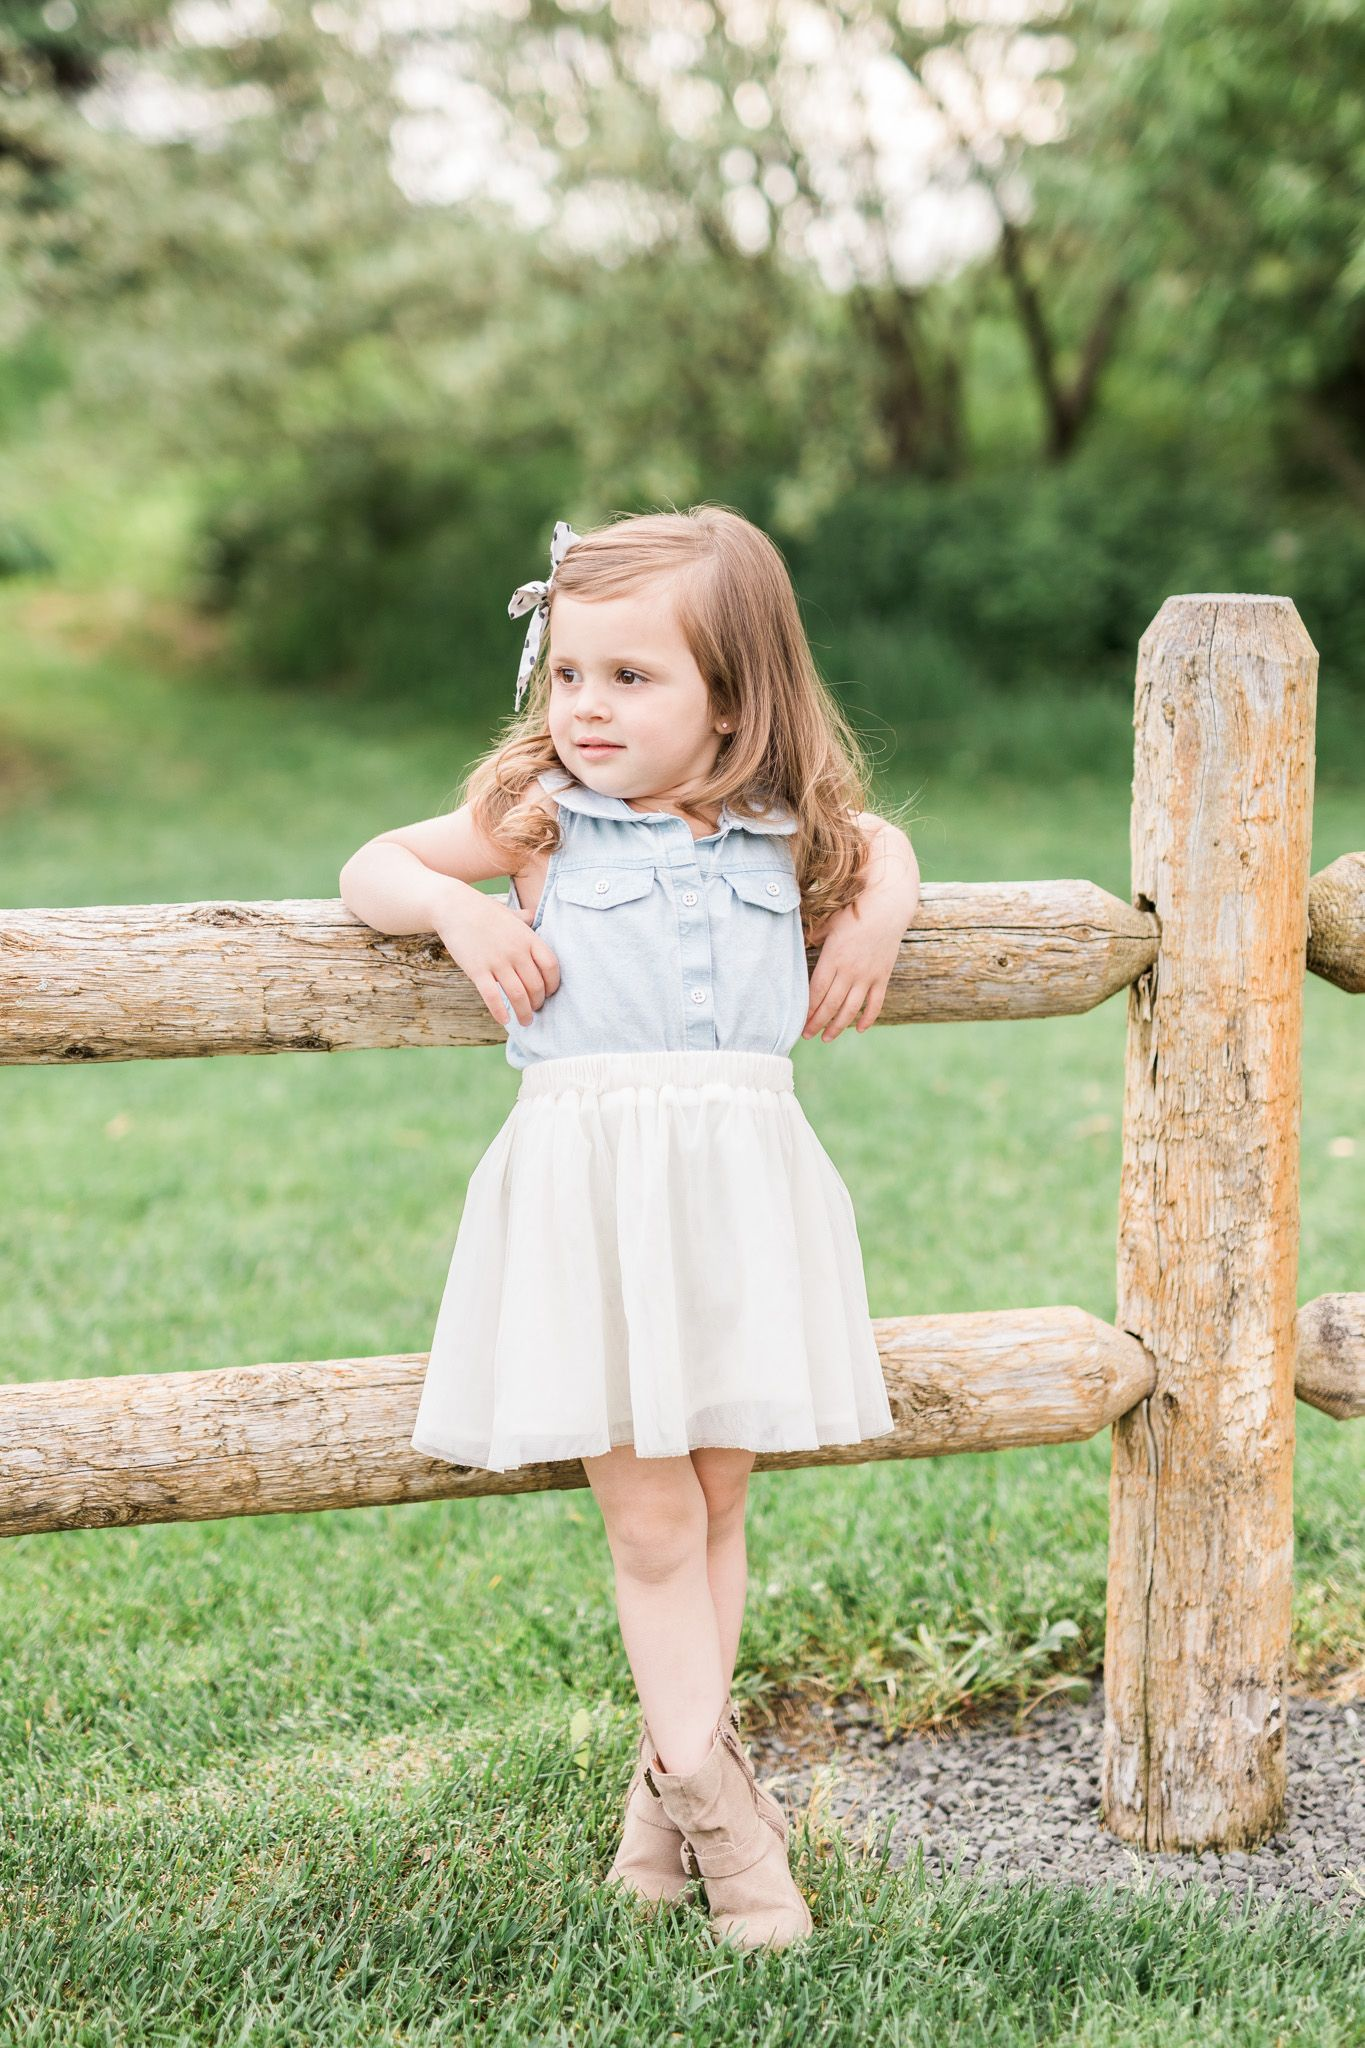 3 Year old girl | what to wear | country rustic | model | laurenda marie  photography | Children photography poses, Little girl photography, Little  girl poses